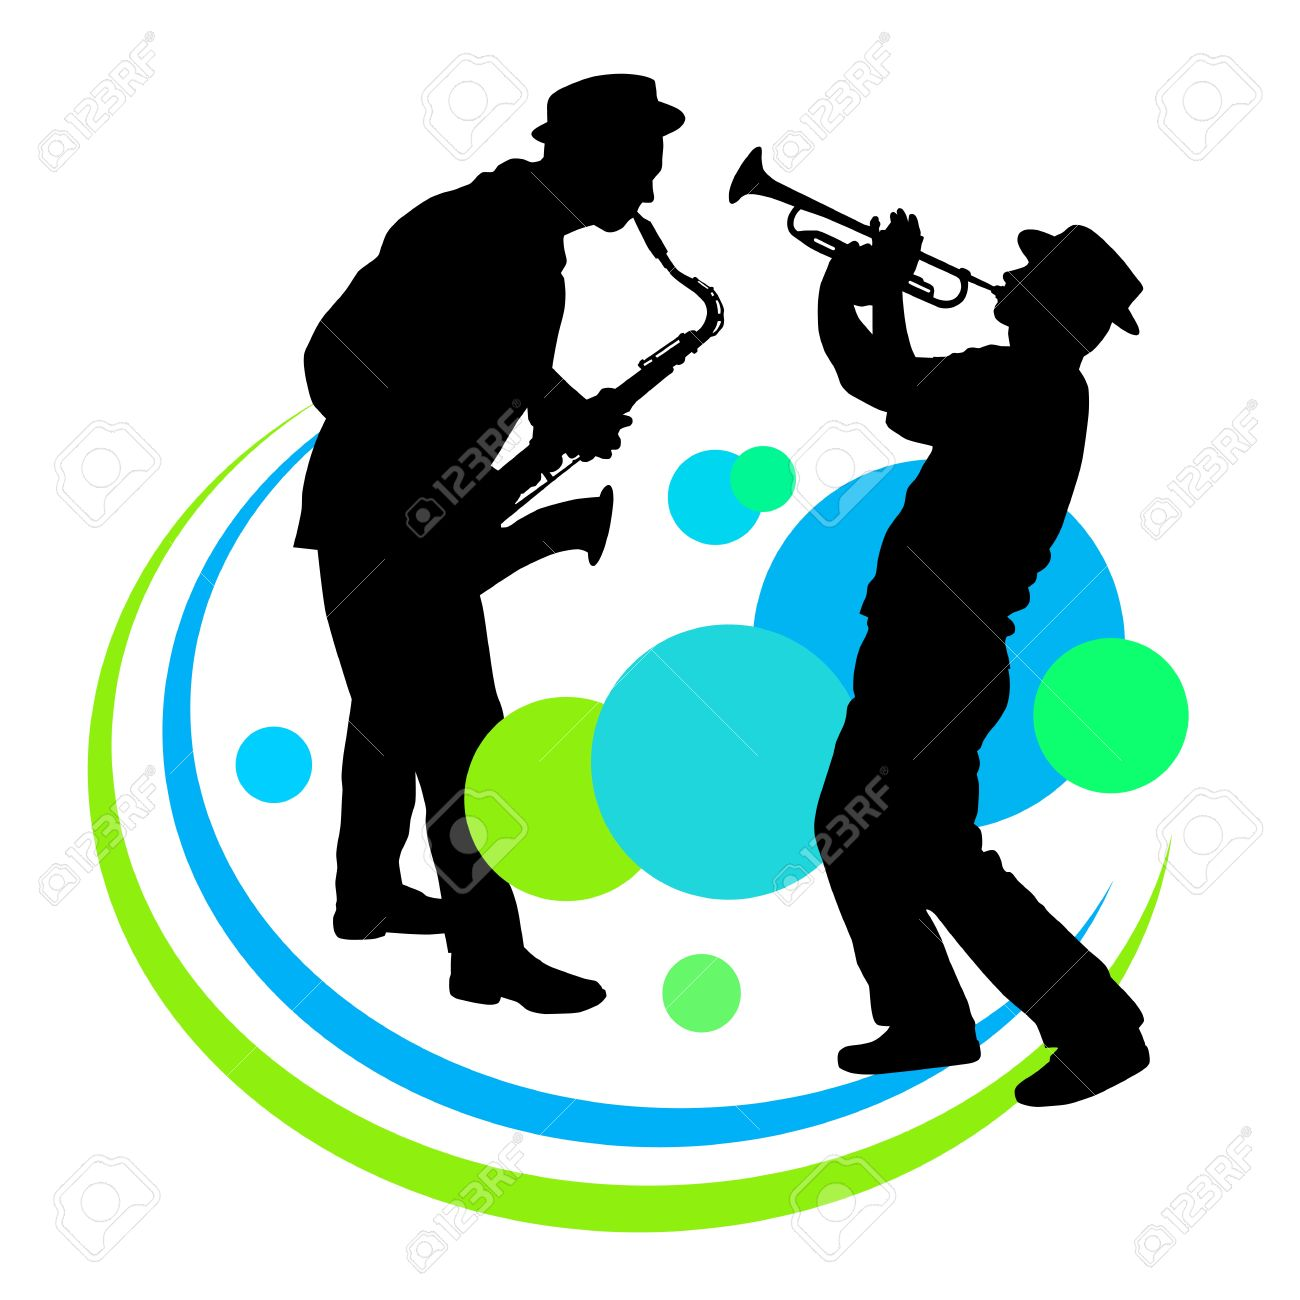 saxophone silhouette clip art at getdrawings com free for personal rh getdrawings com